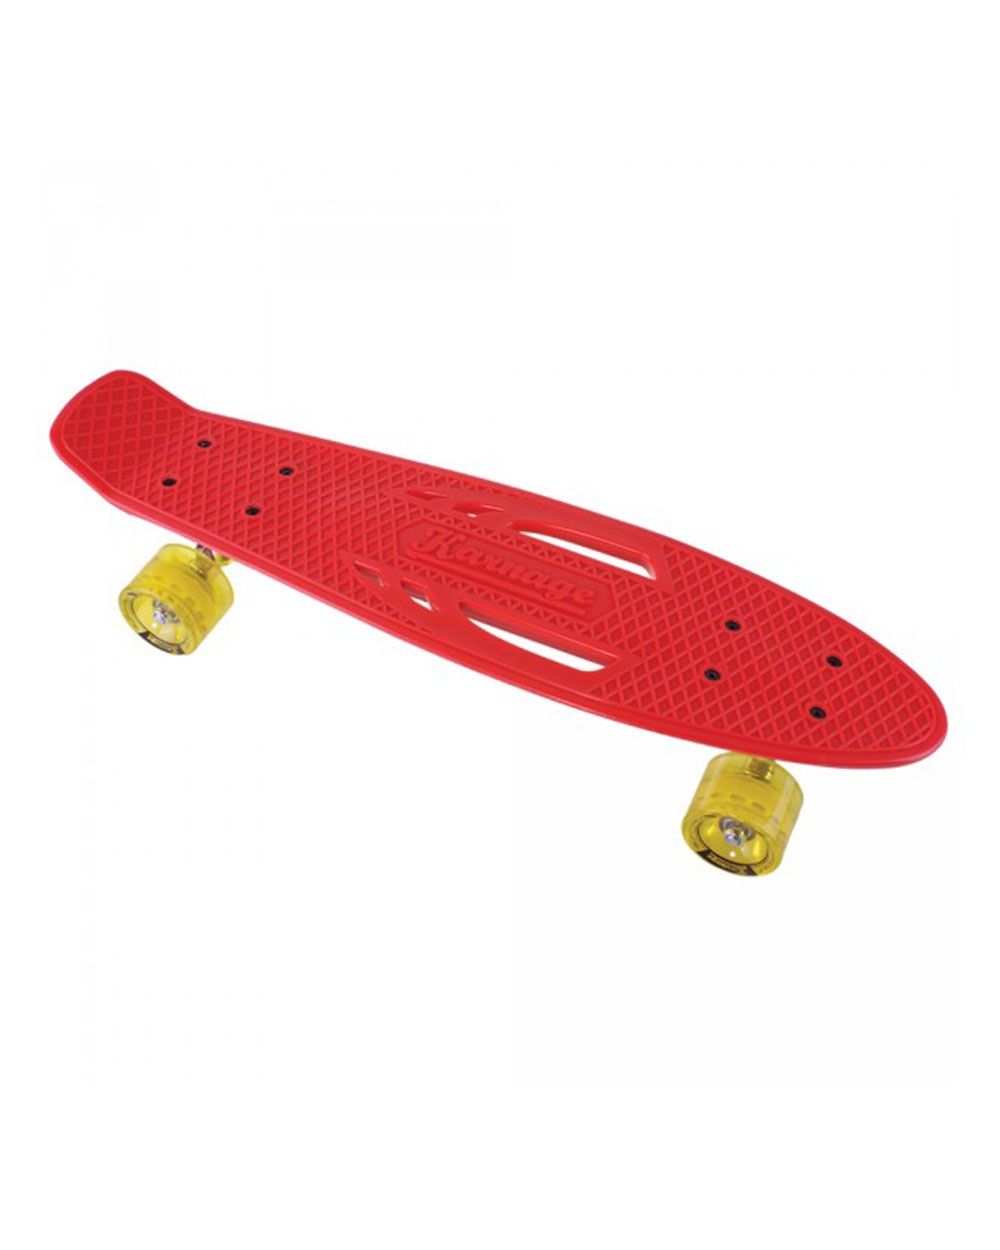 MAUI Karnage 23 retroskate cut red